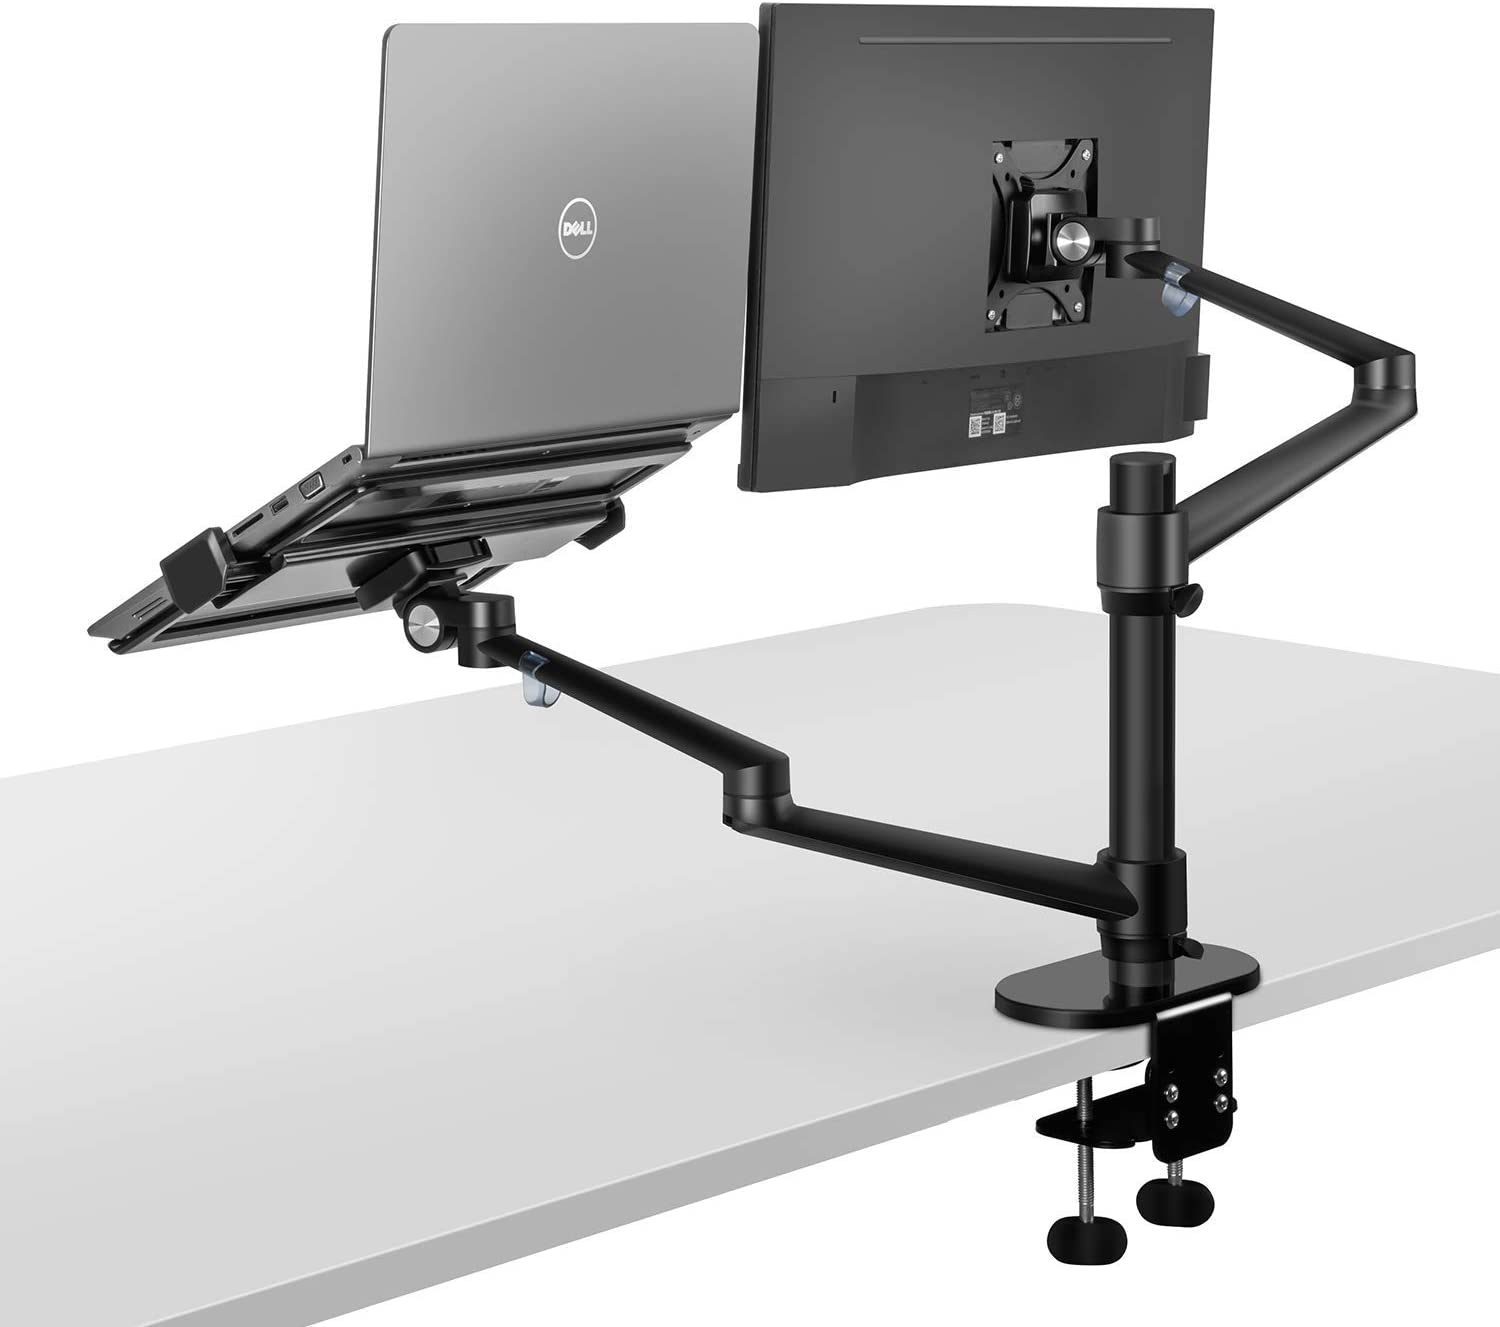 2 in 1 360 Degree Rotating Double Arm Laptop Stand for Desk, Monitor Holder Stand for Desk, Workstation Support 12-17 inch Laptop/Notebook/Tablet, Monitor 17-32 inch(Black)